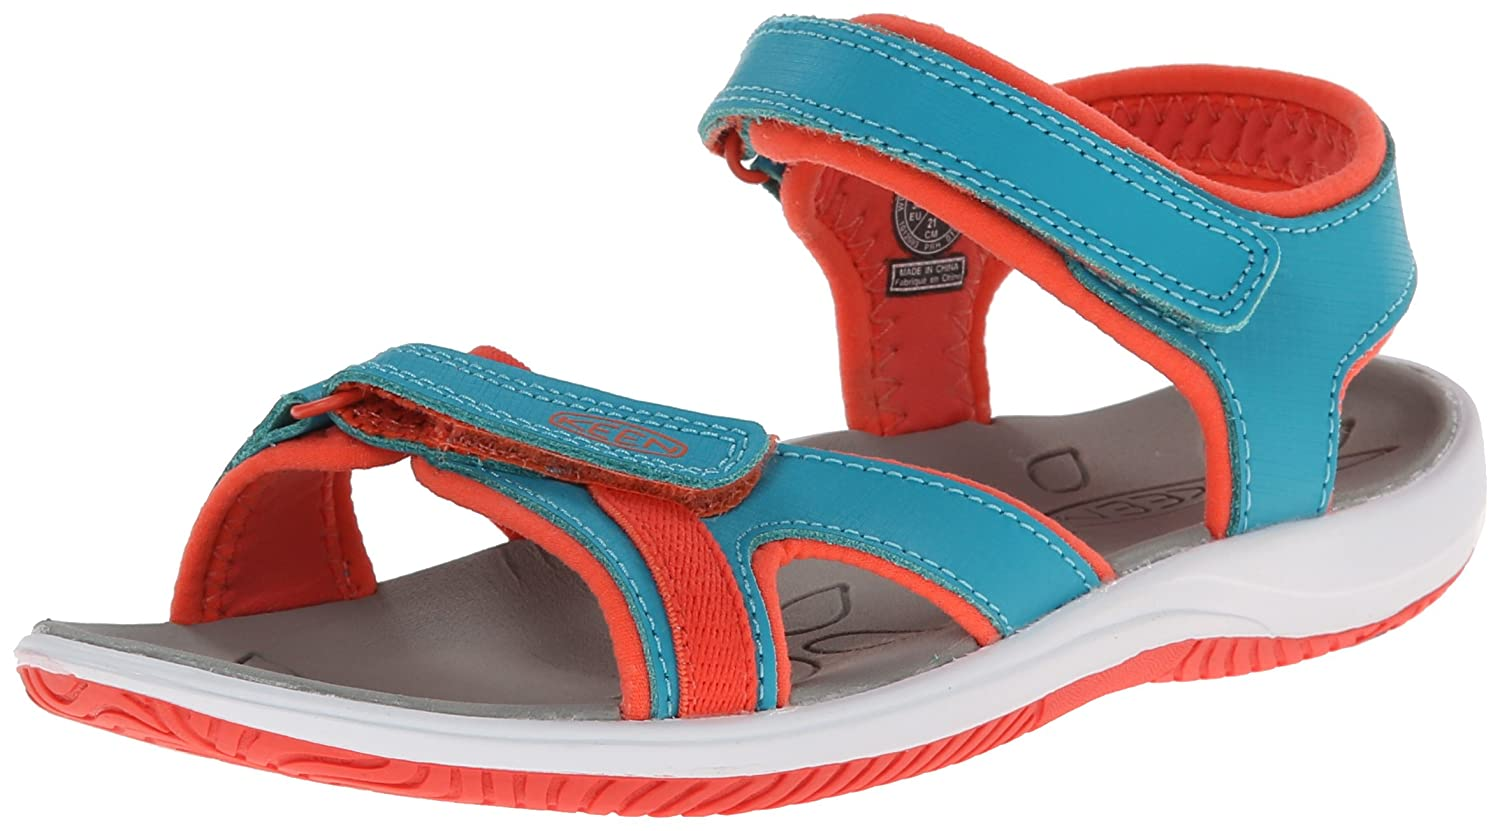 KEEN Harper Sandal (Toddler/Little Kid/Big Kid) Keen Kids Footwear Harper Youth - K